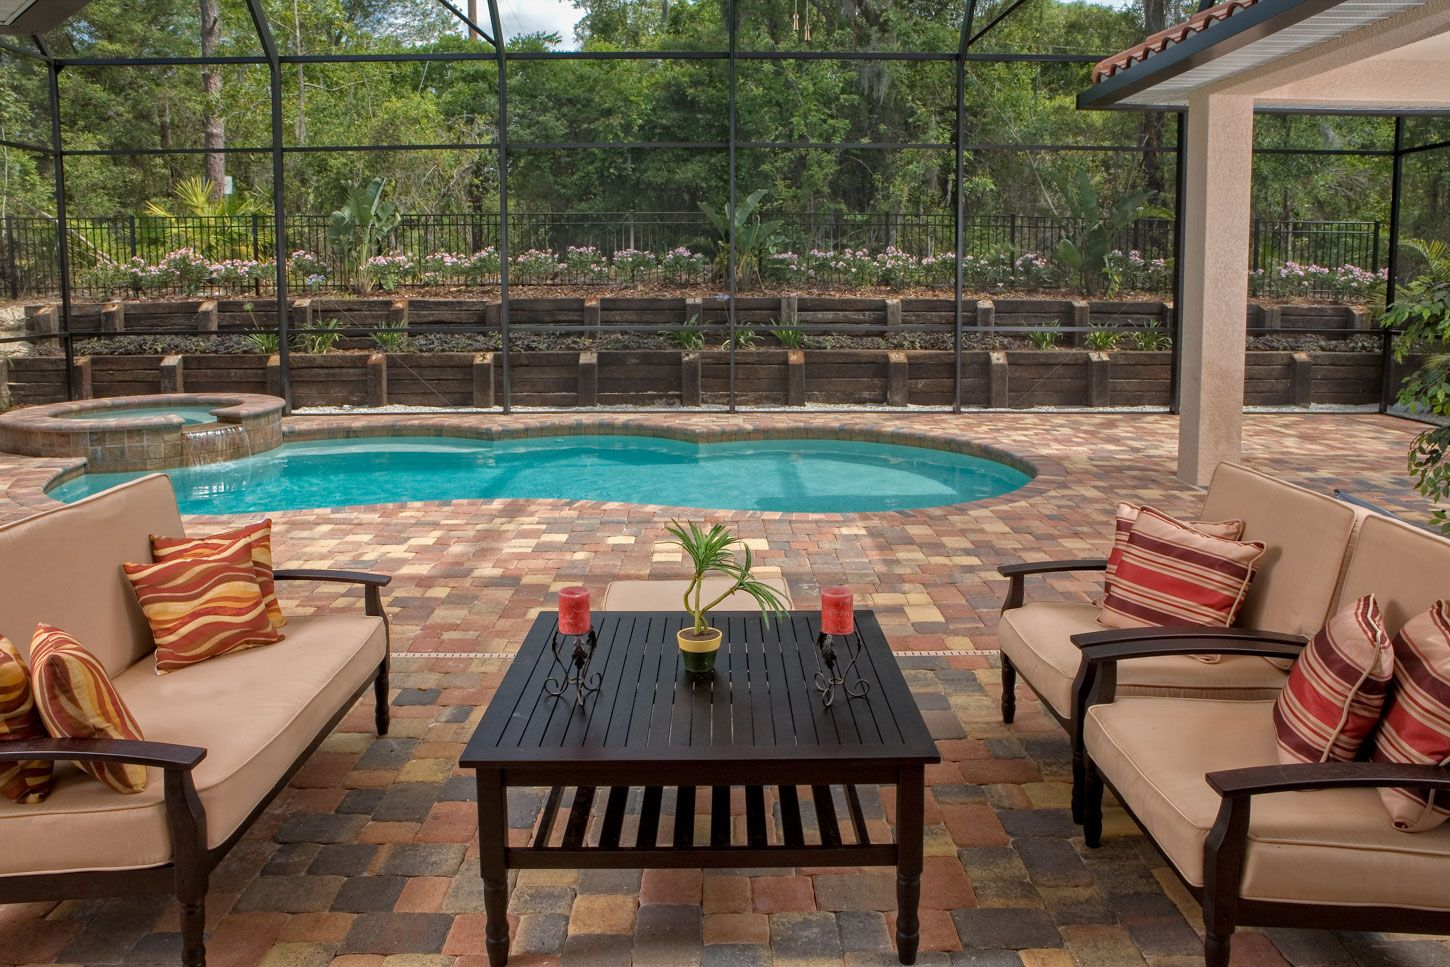 Pin by Homes by Southern Image on Pools & Outside Living ... on Southern Pools And Outdoor Living  id=42438